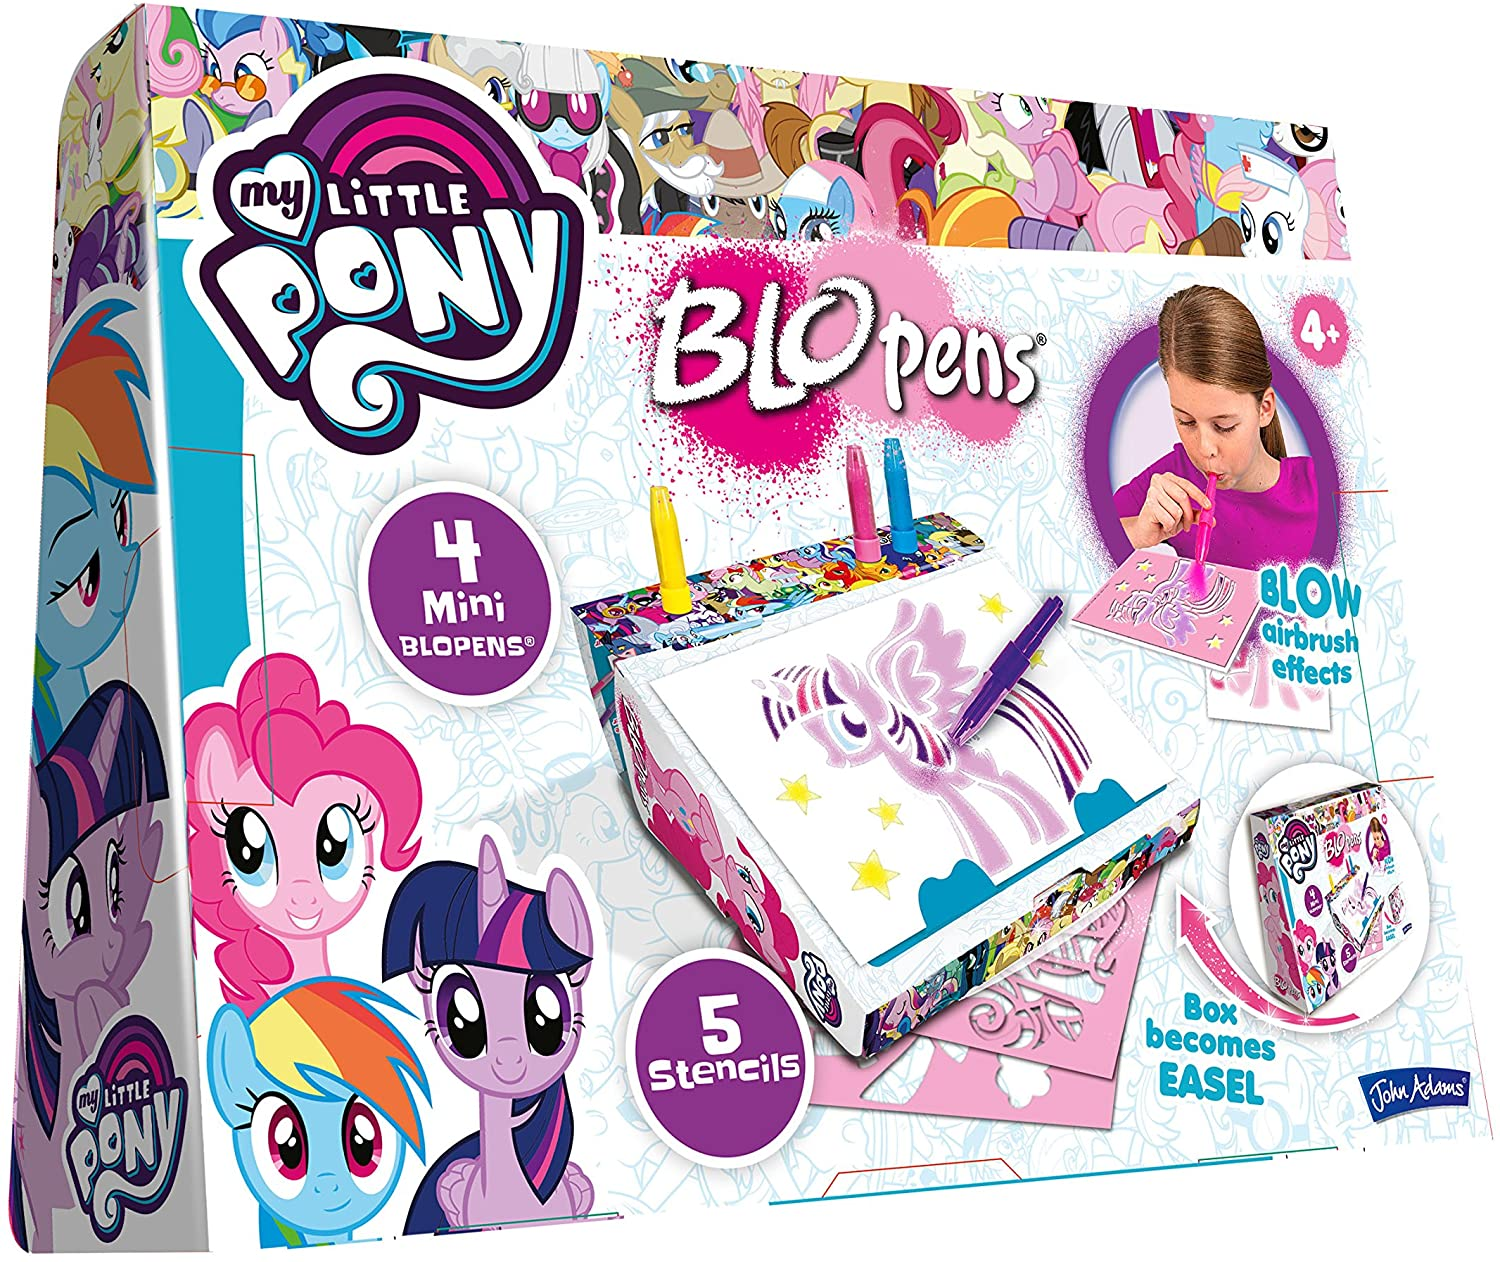 My Little Pony BLOPENS Creative Case from John Adams